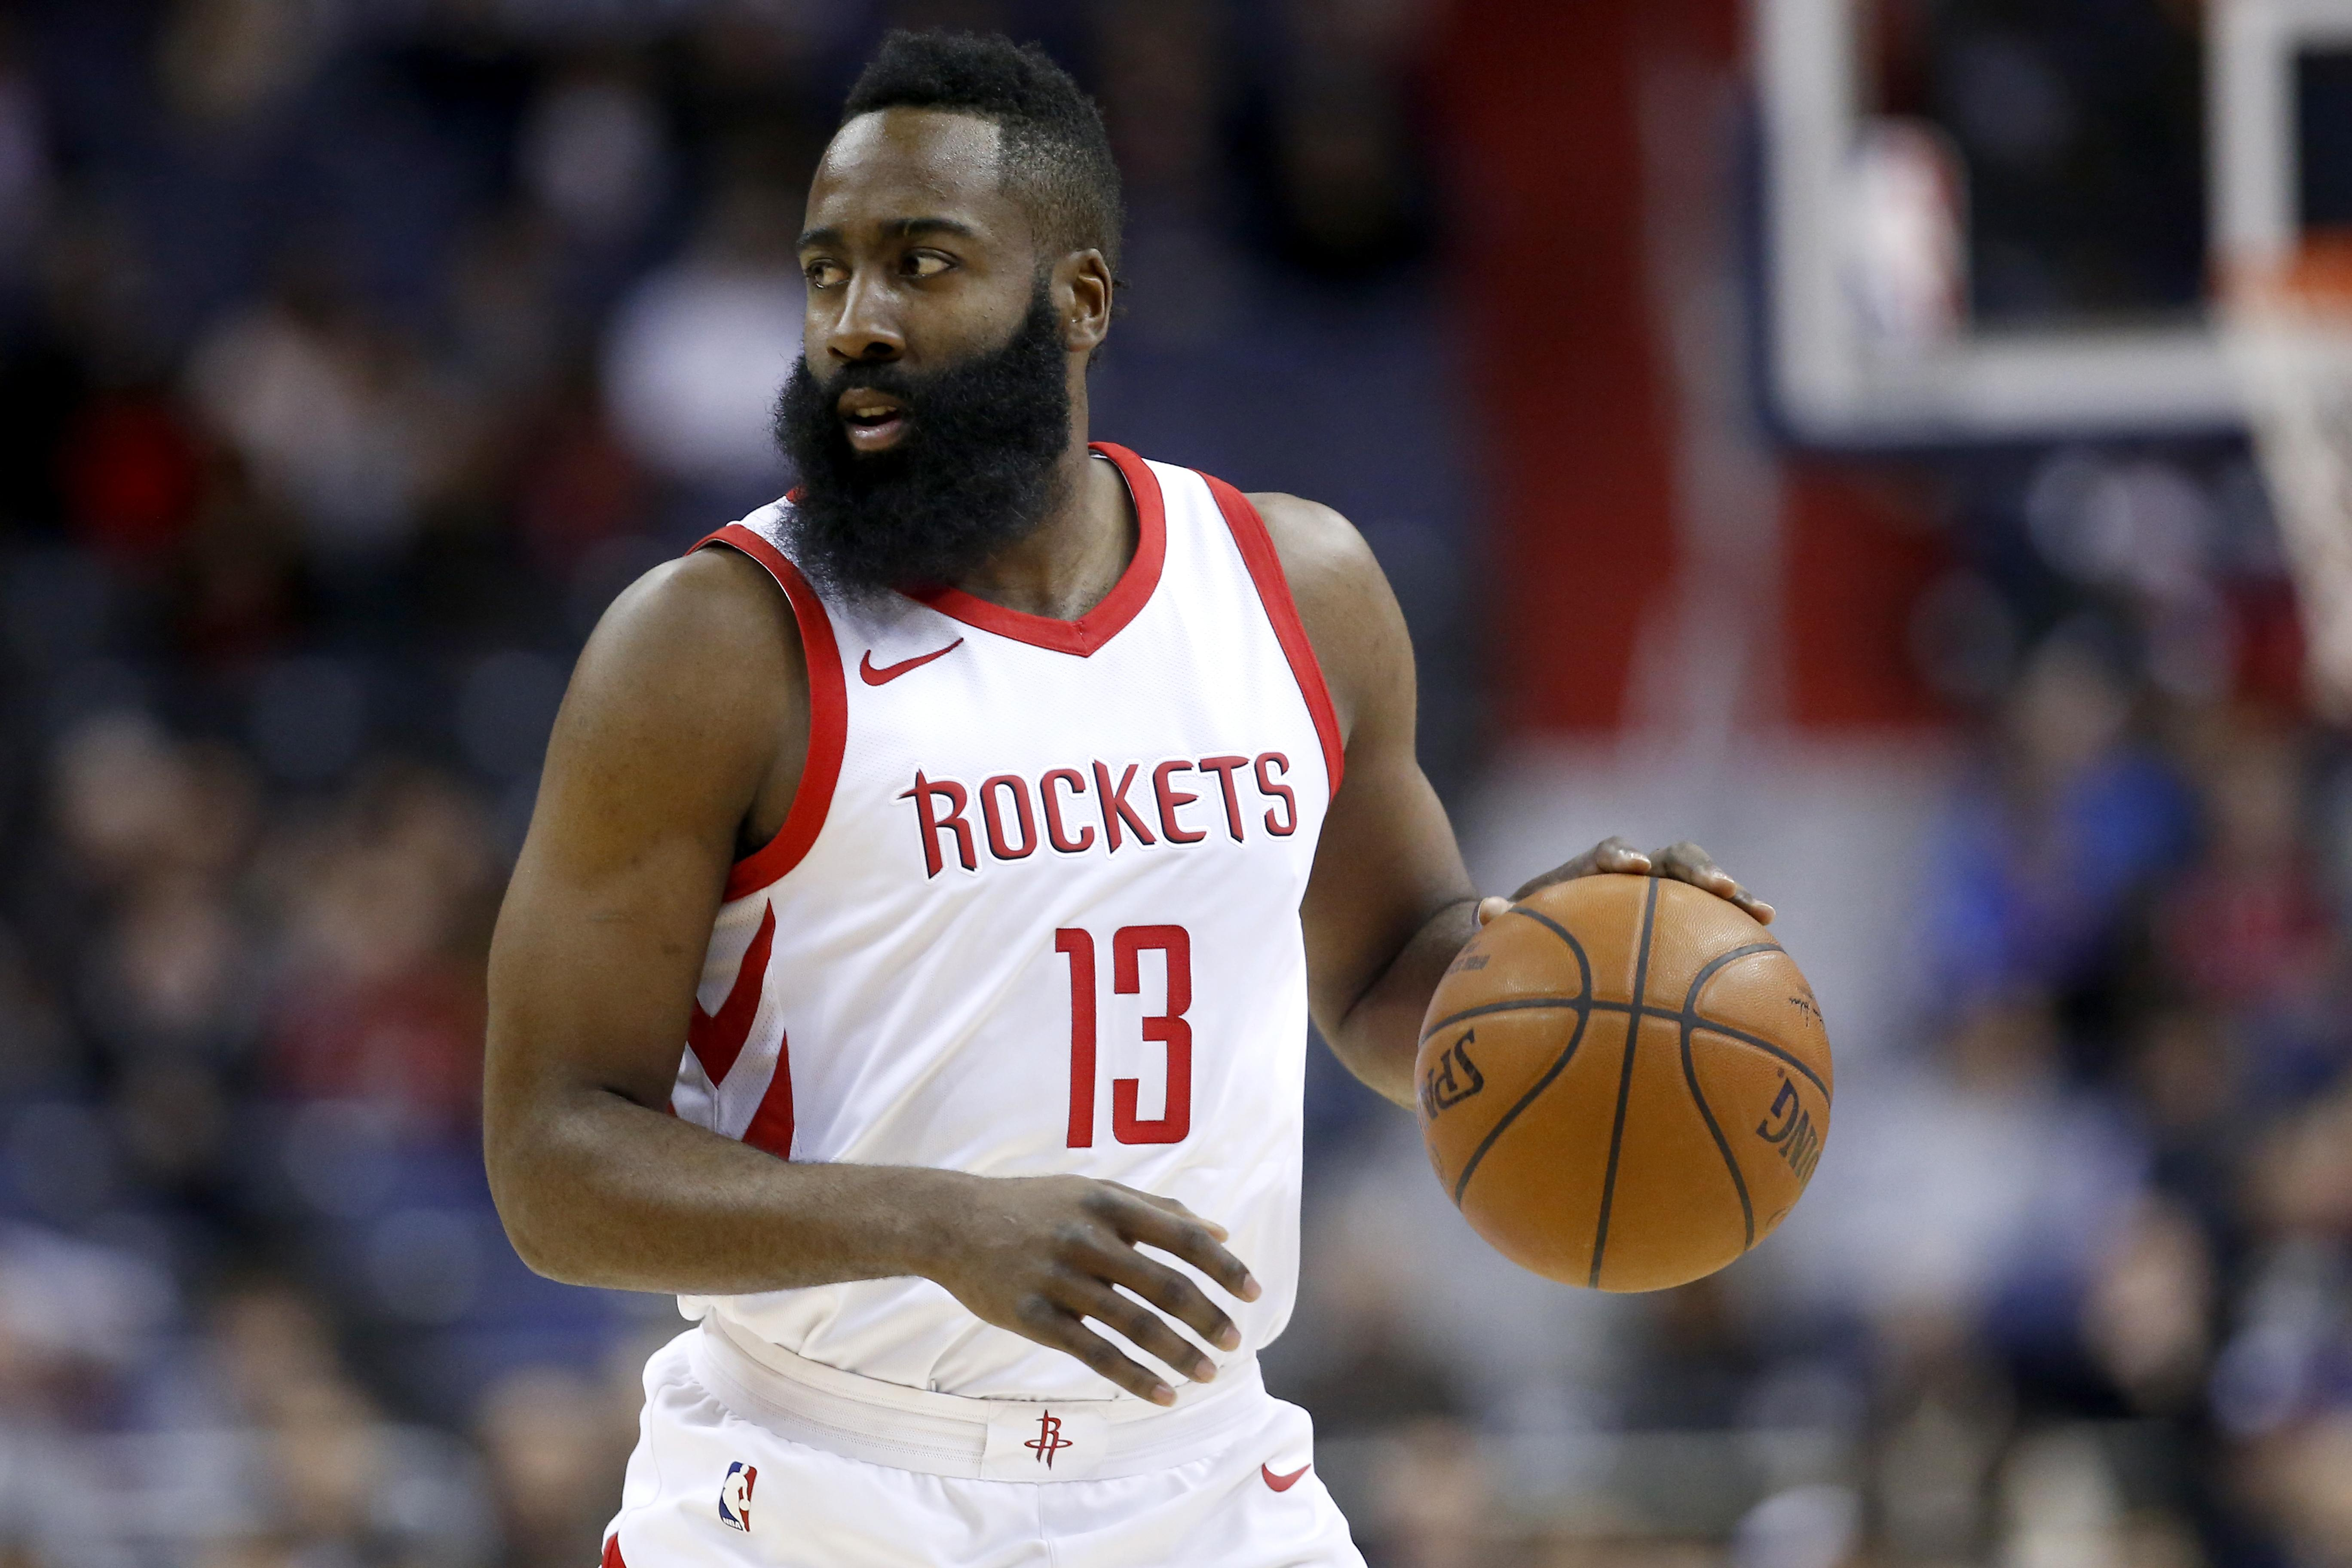 c24660f92cf James Harden is a contender for MVP this season. In this picture